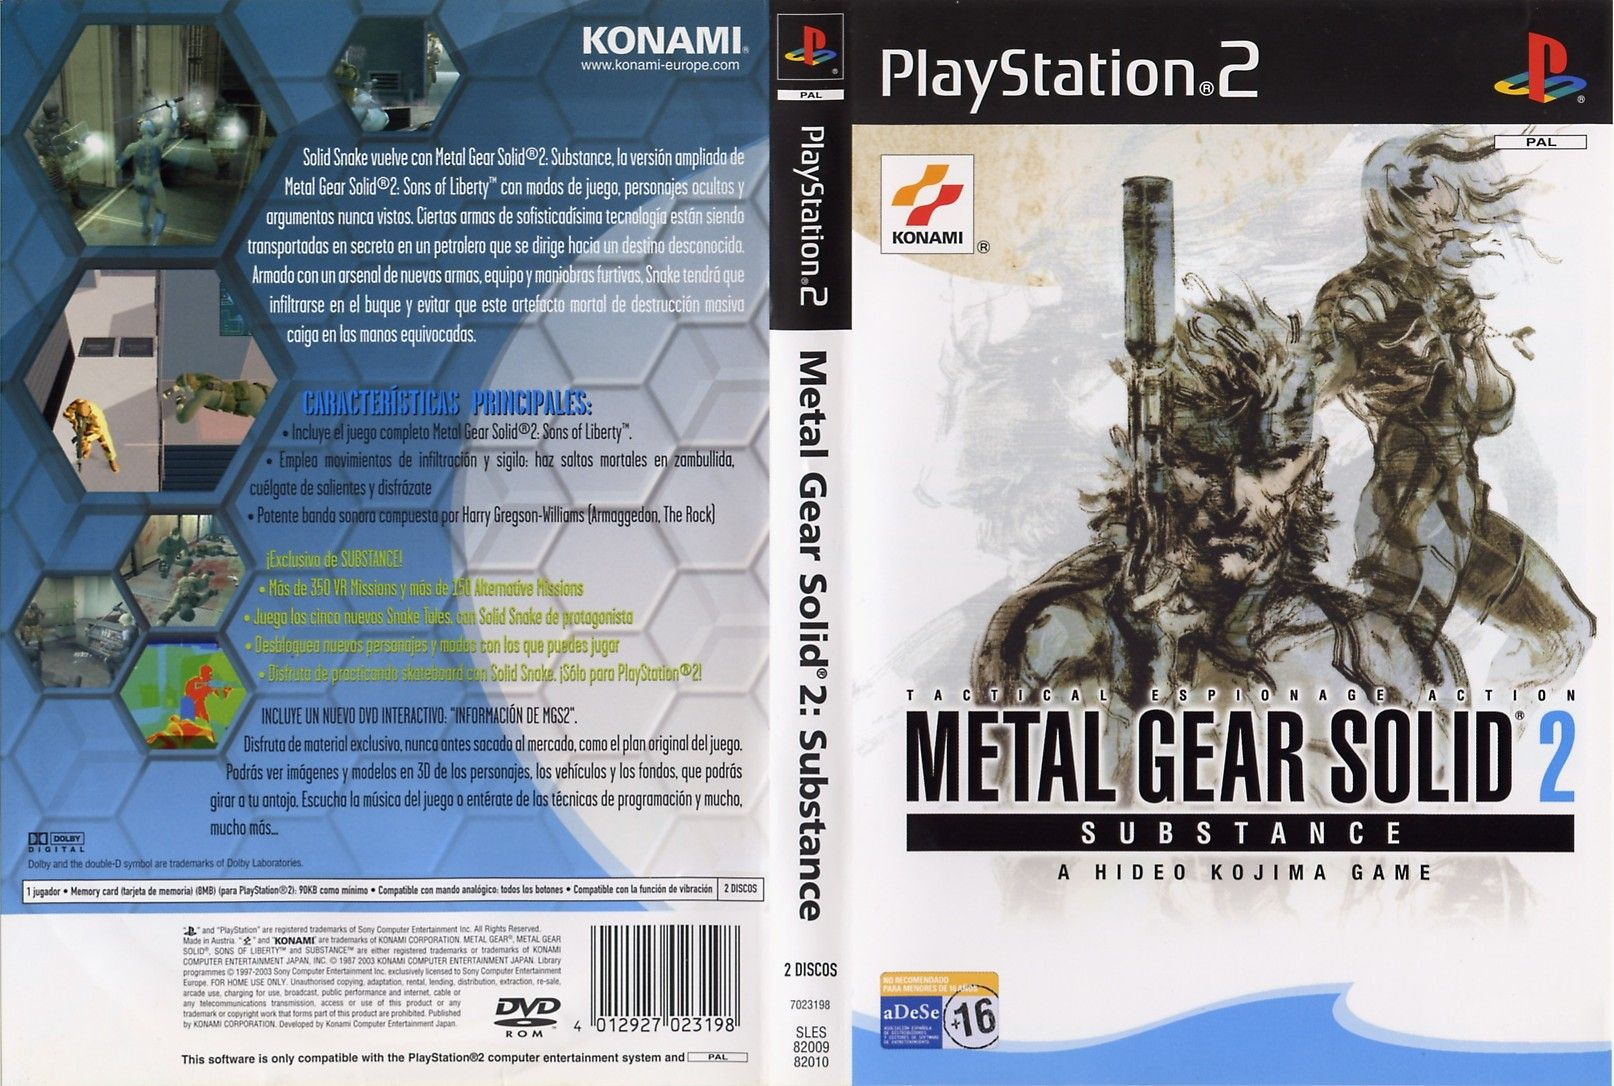 download metal gear solid 2 substance ps2 iso